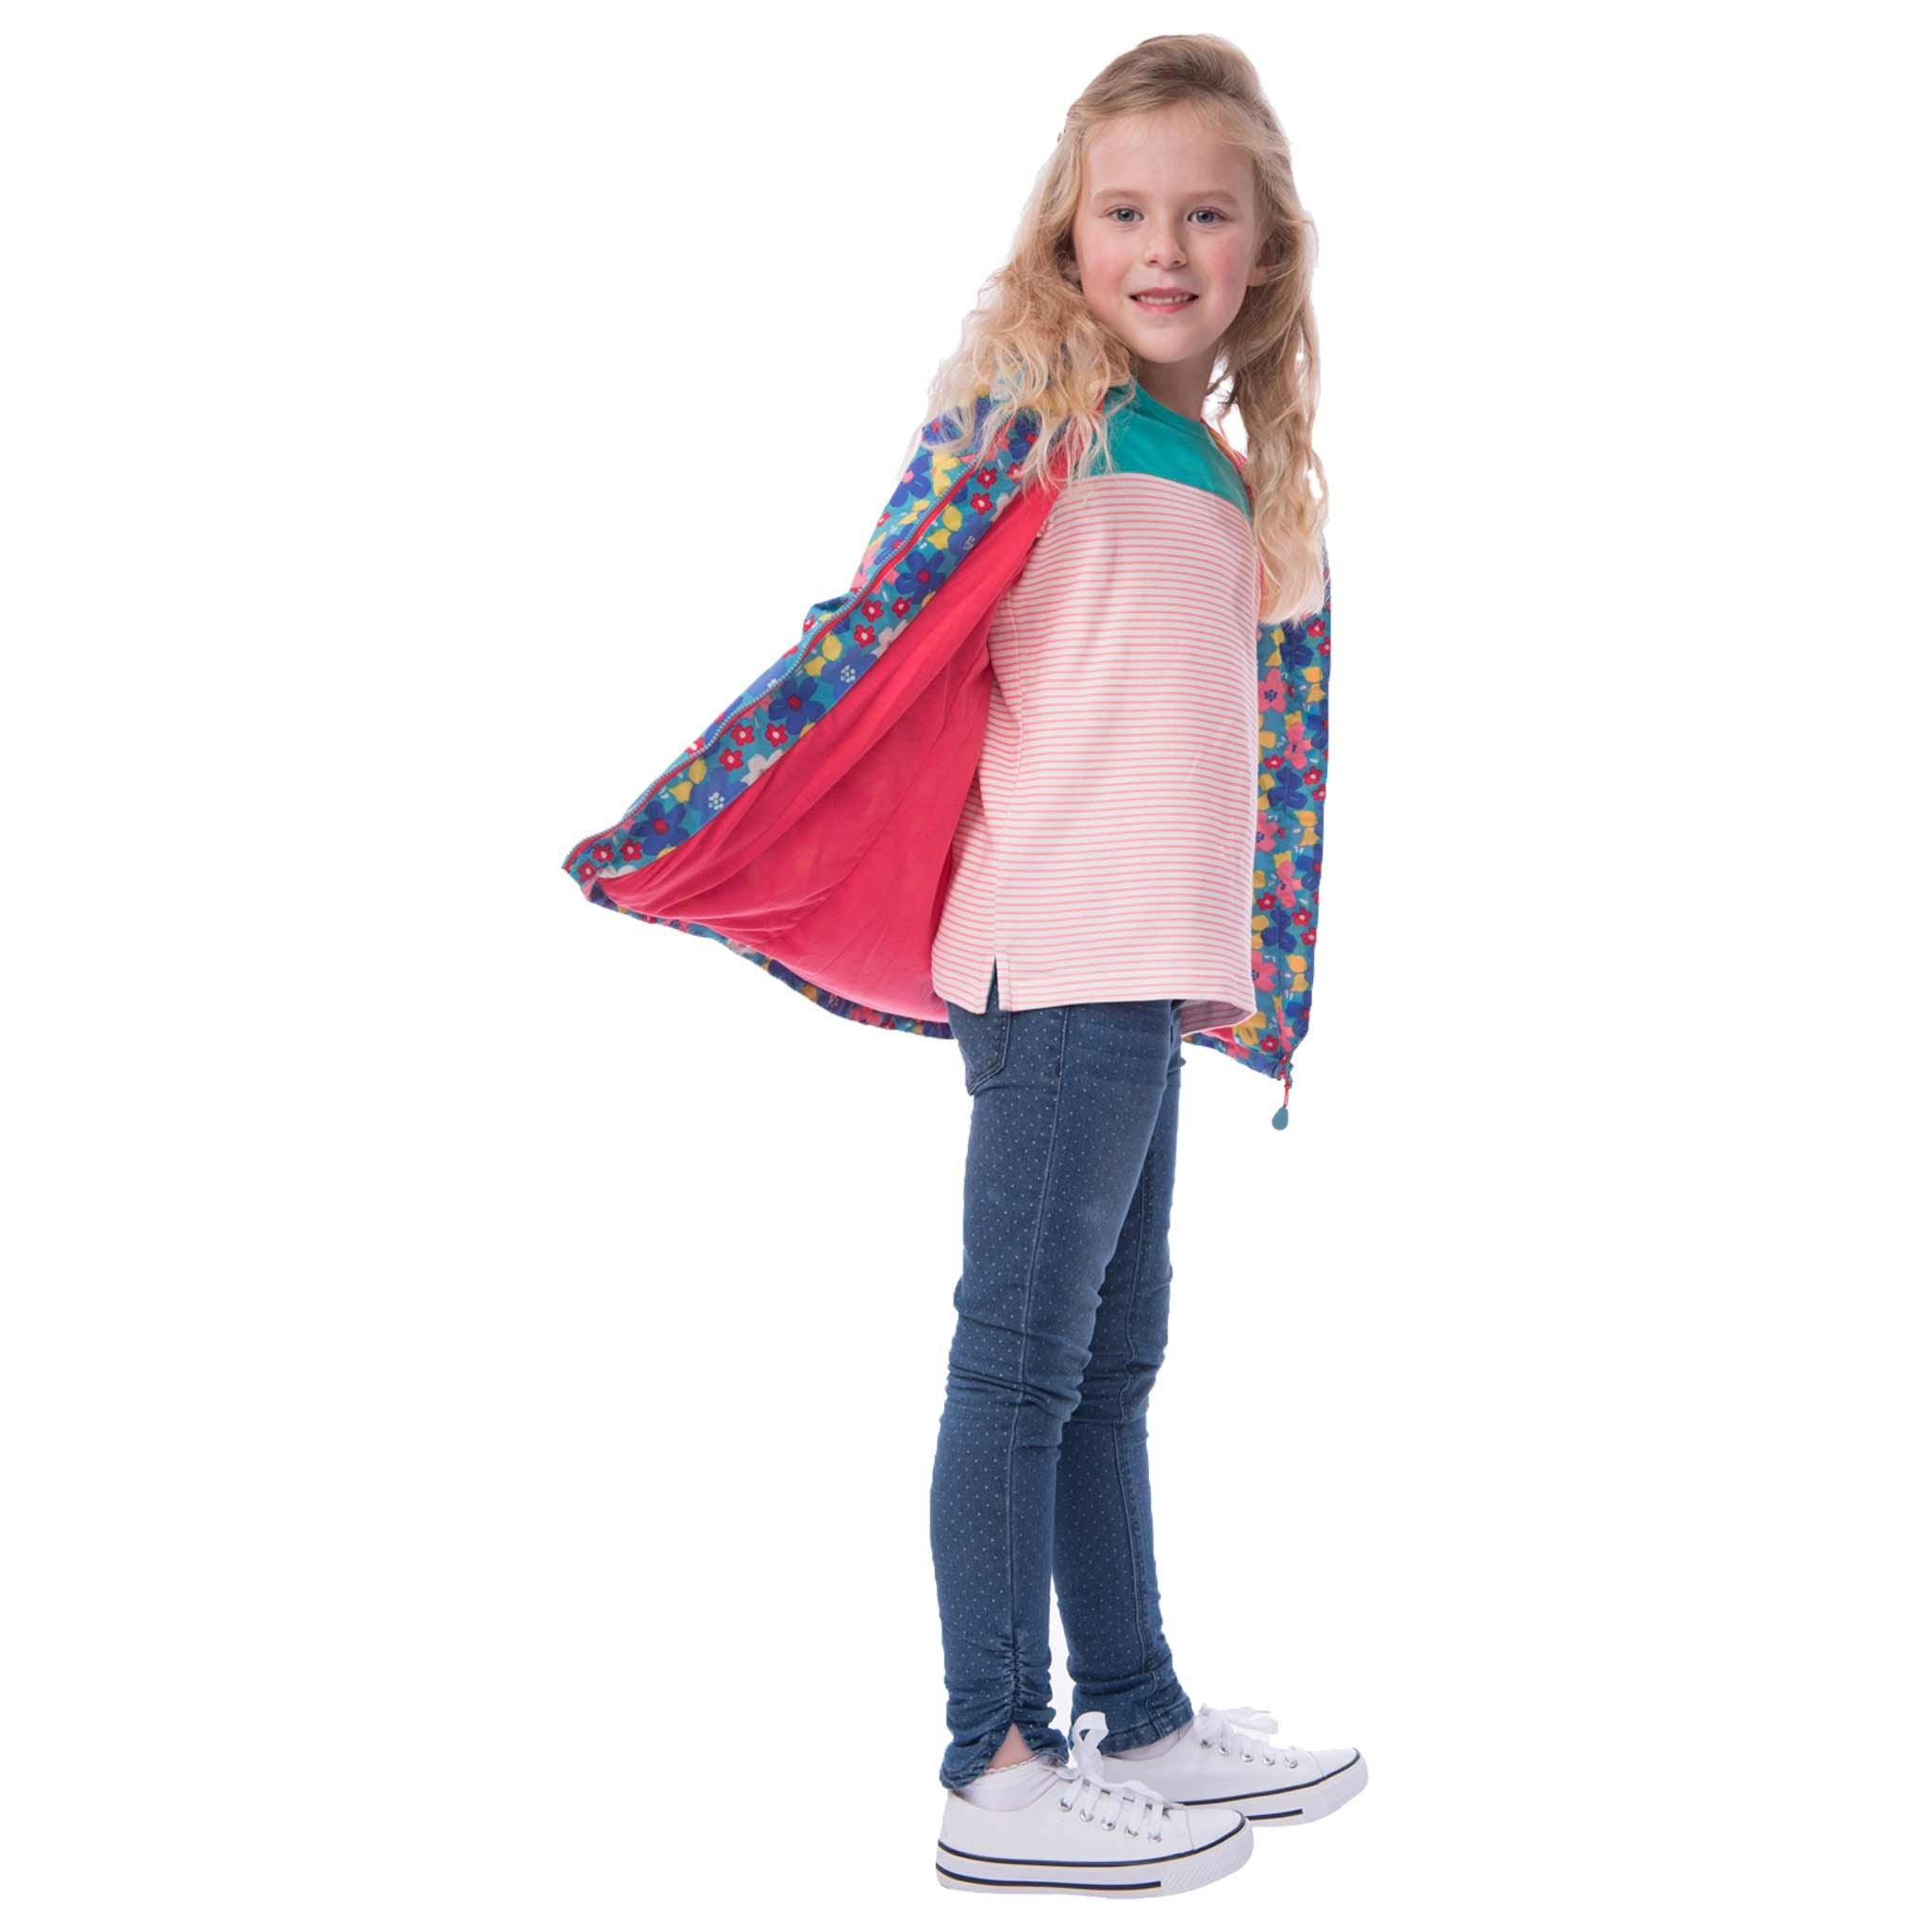 Lighthouse Blossom Girls Waterproof Coat in Sea Spray Floral Print